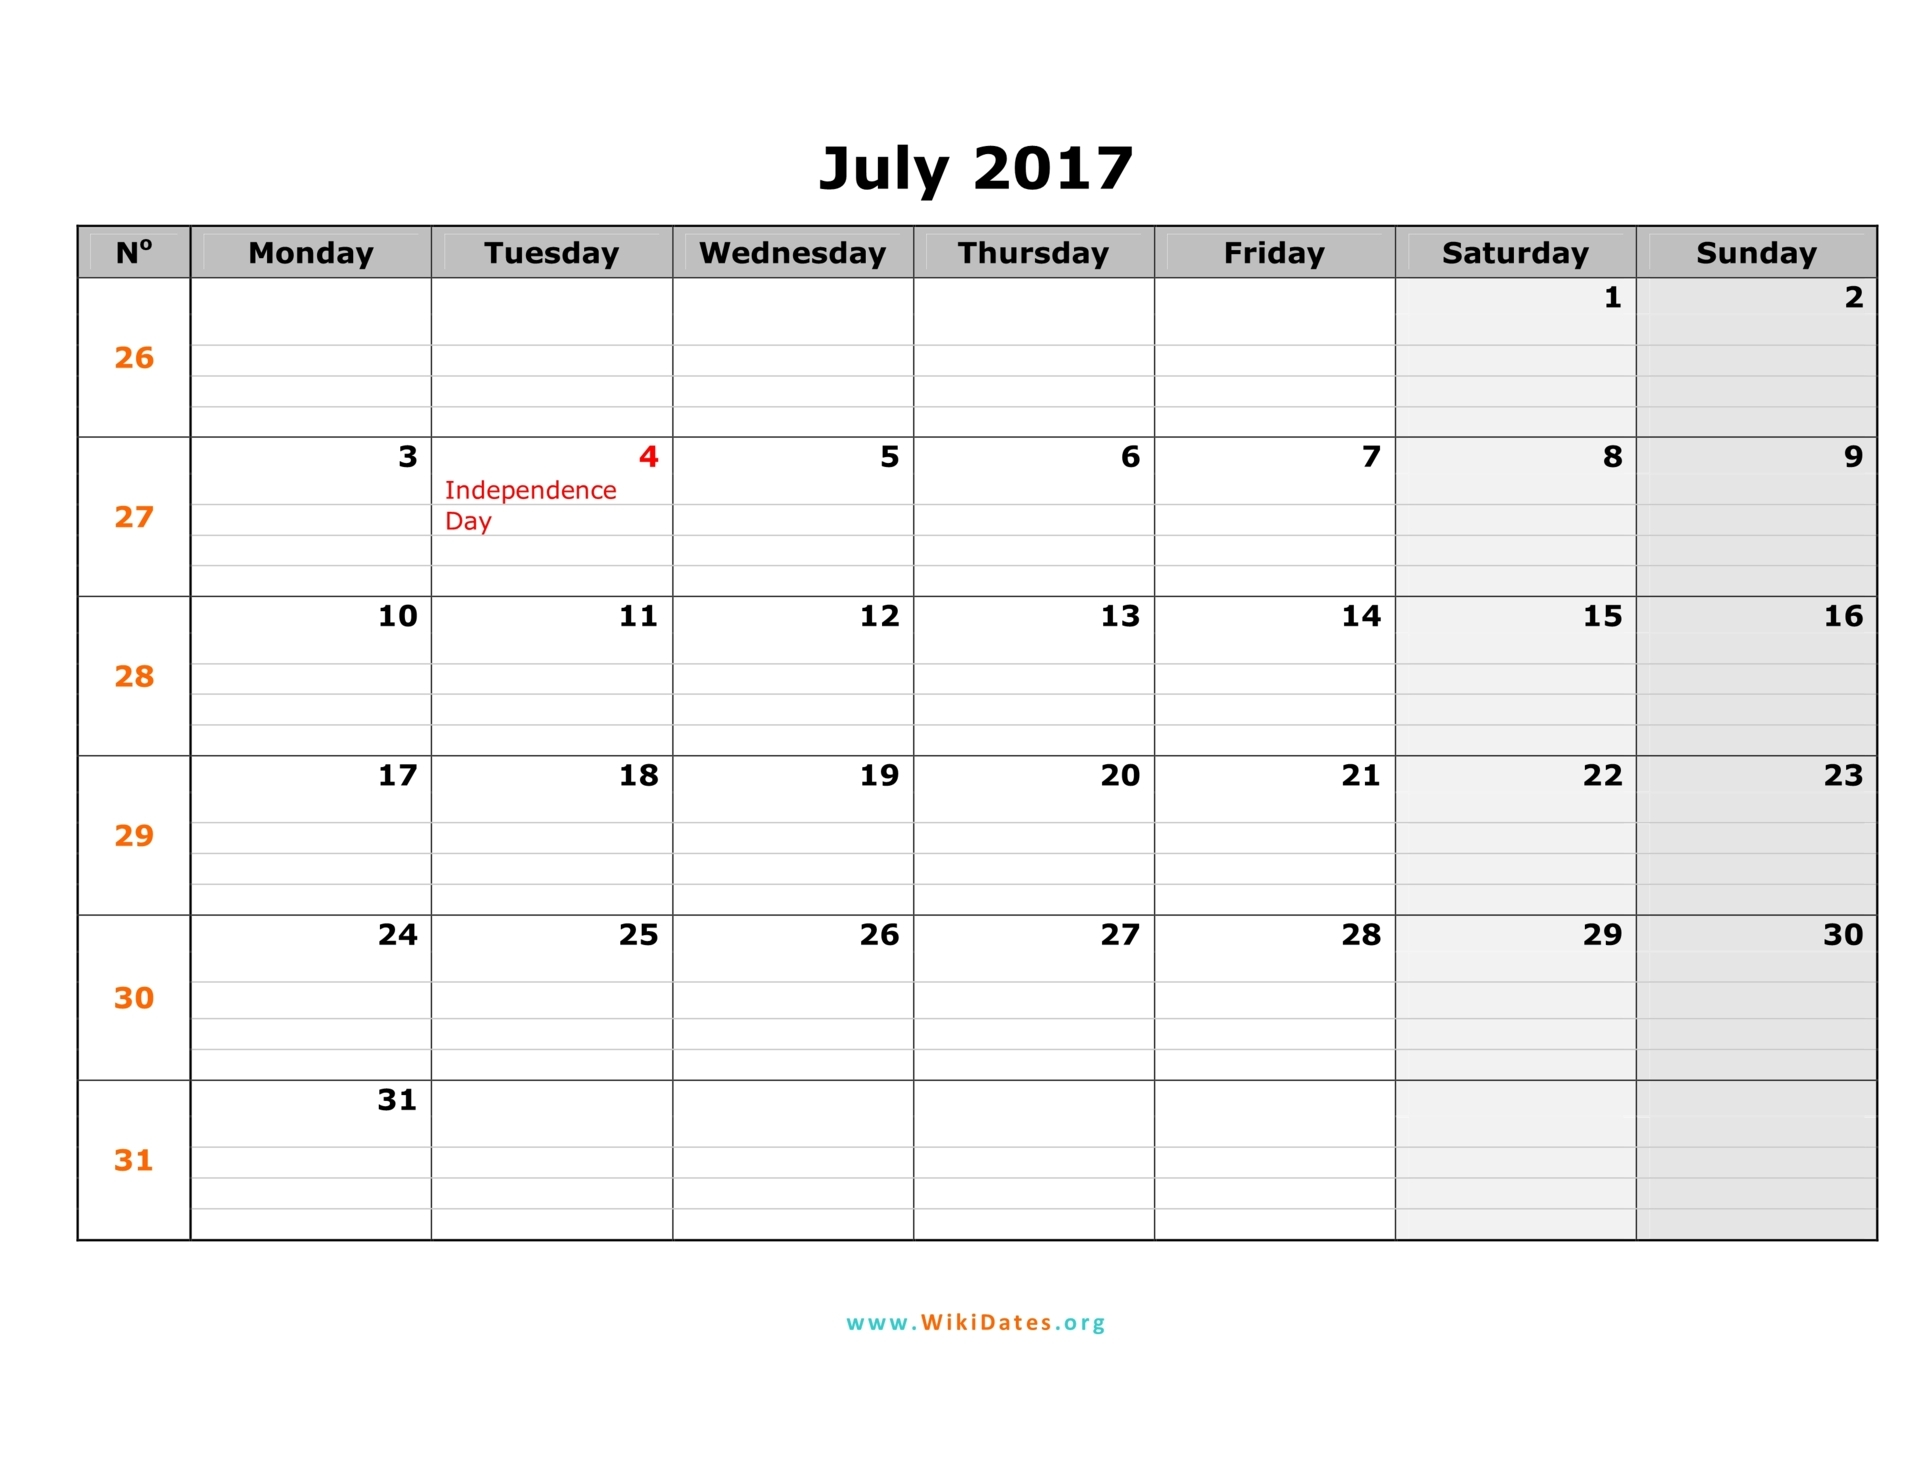 Us forex holidays 2017